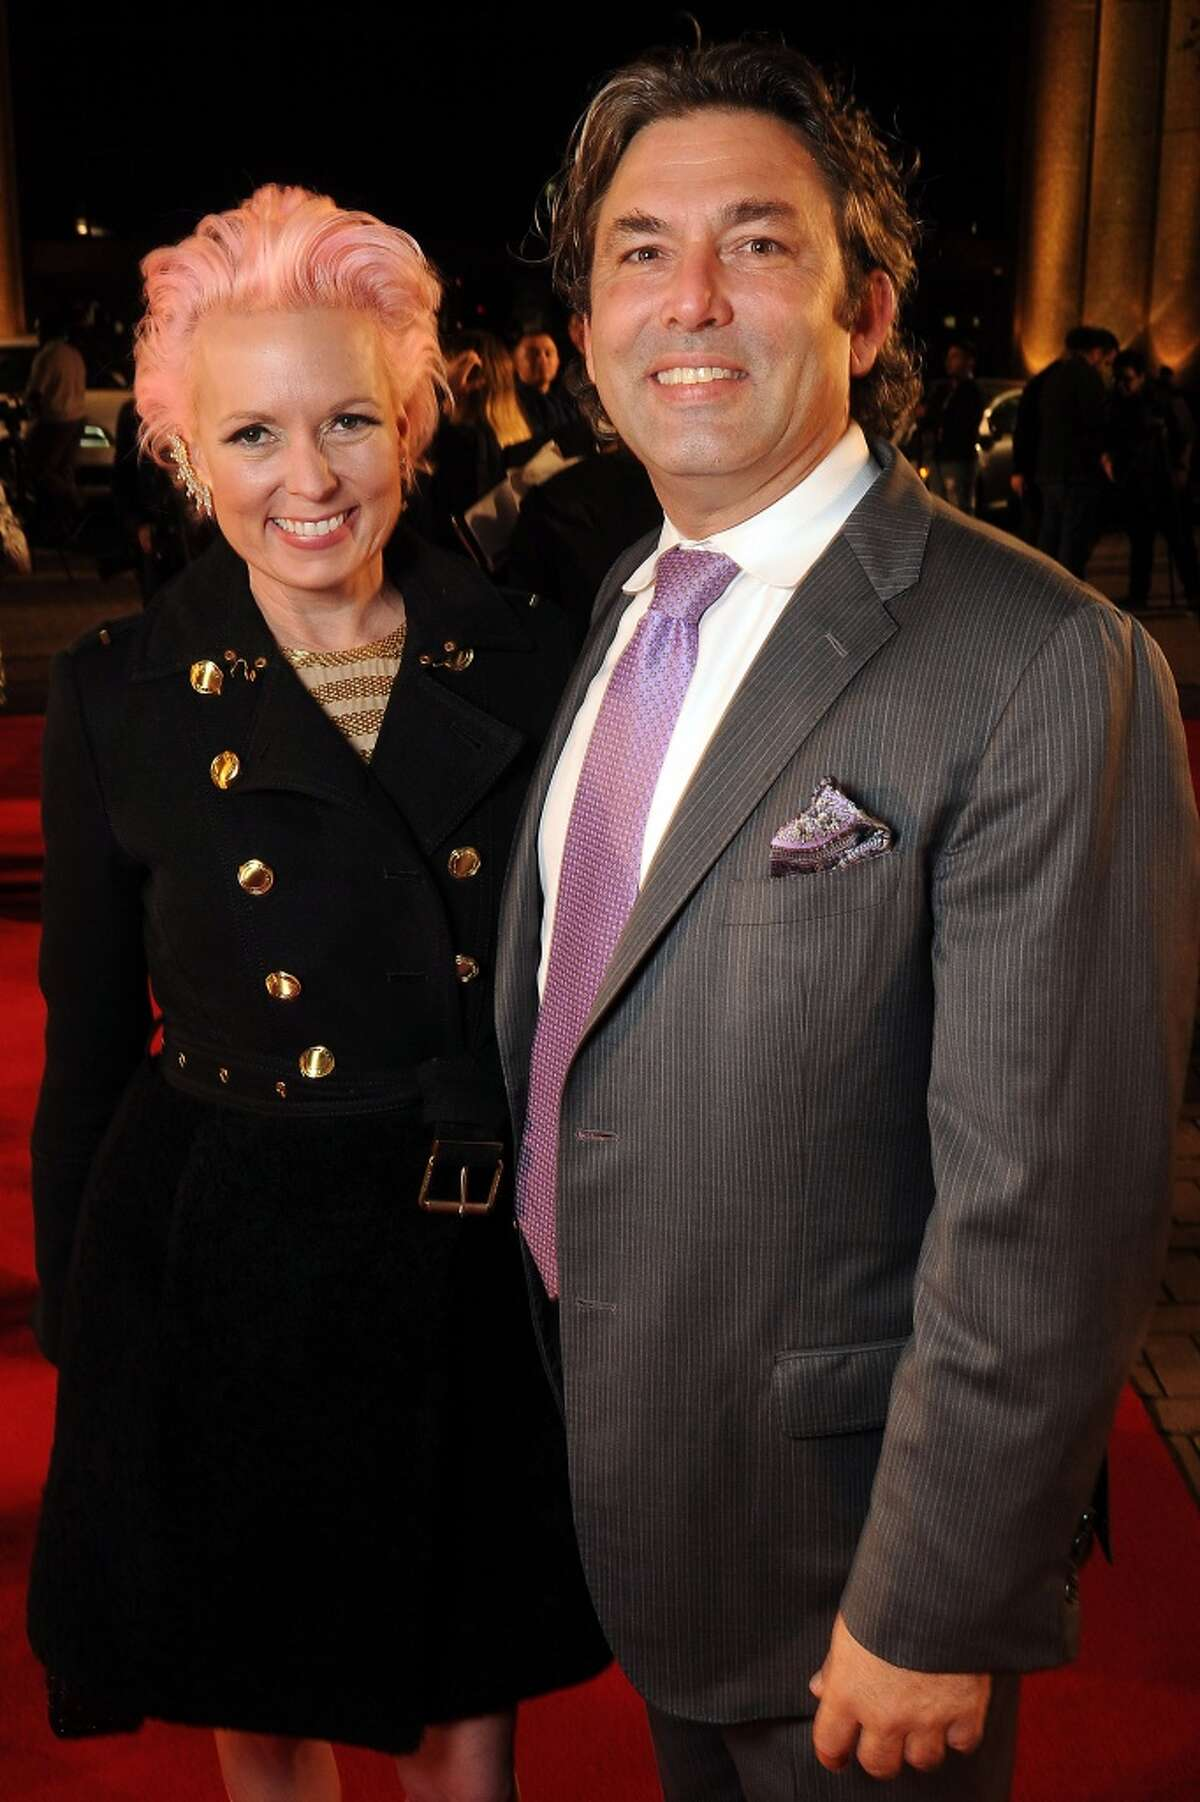 Vivian Wise and Jared Lang on the red carpet at Fashion Houston 5 at the Wortham Theater Wednesday Nov. 19, 2014.(Dave Rossman photo)